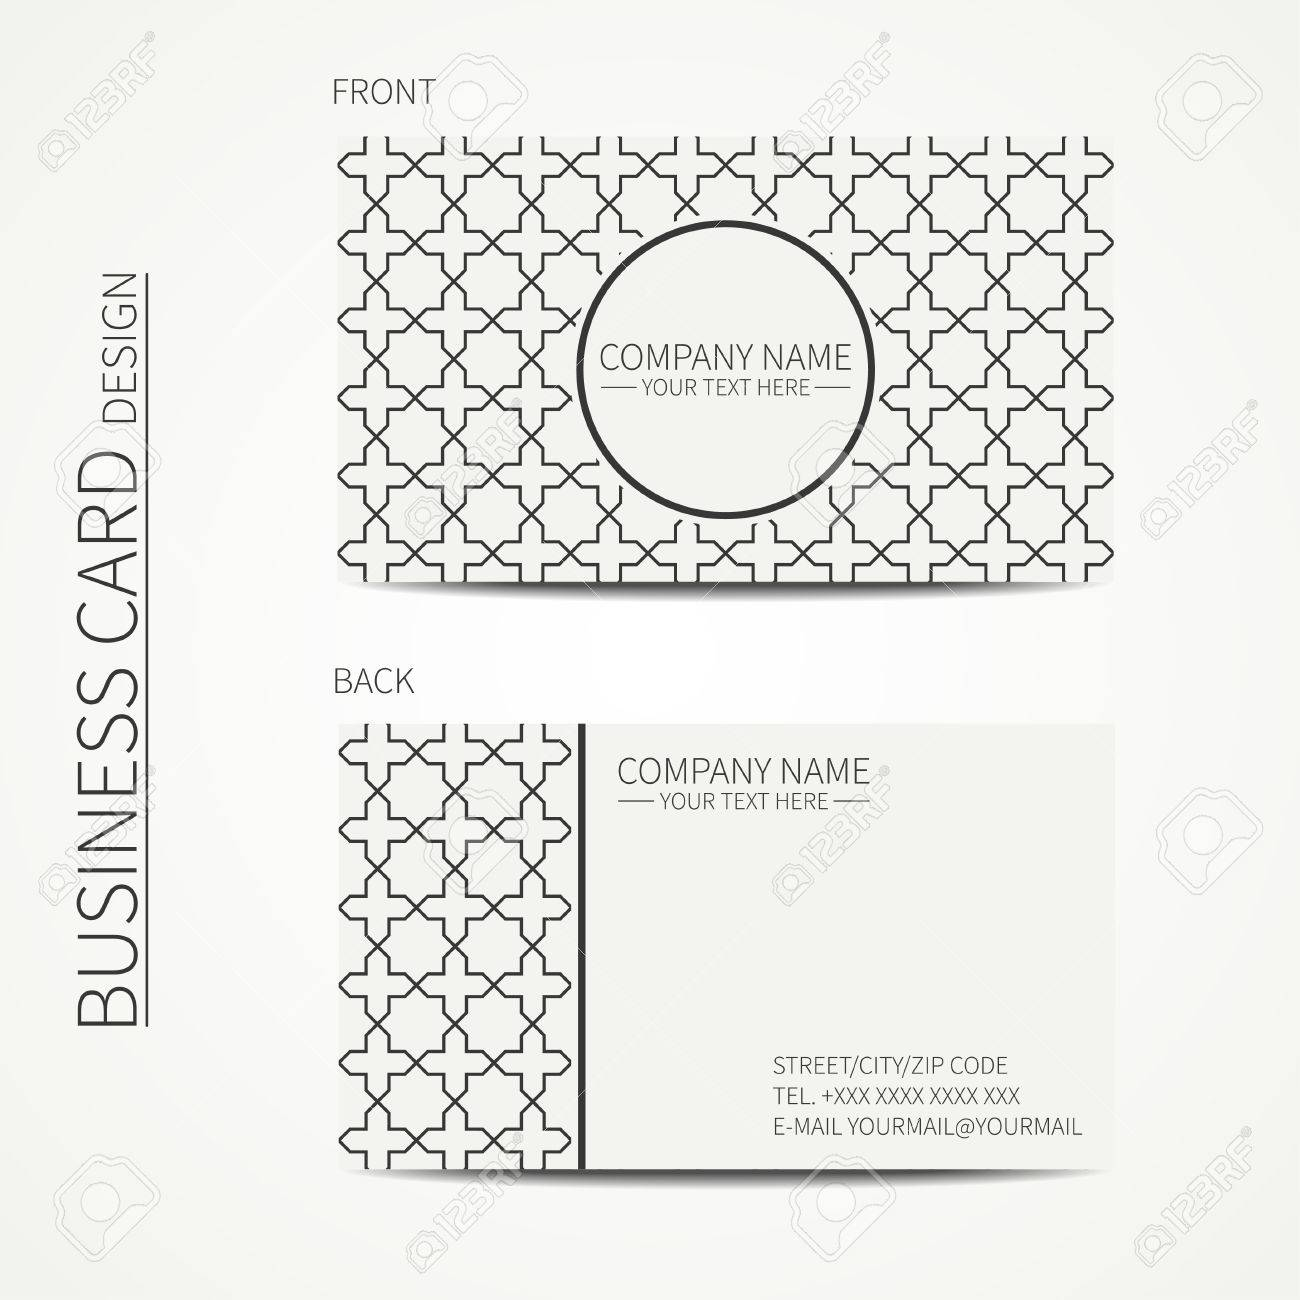 Silver star banner simple form template card vip vector image.